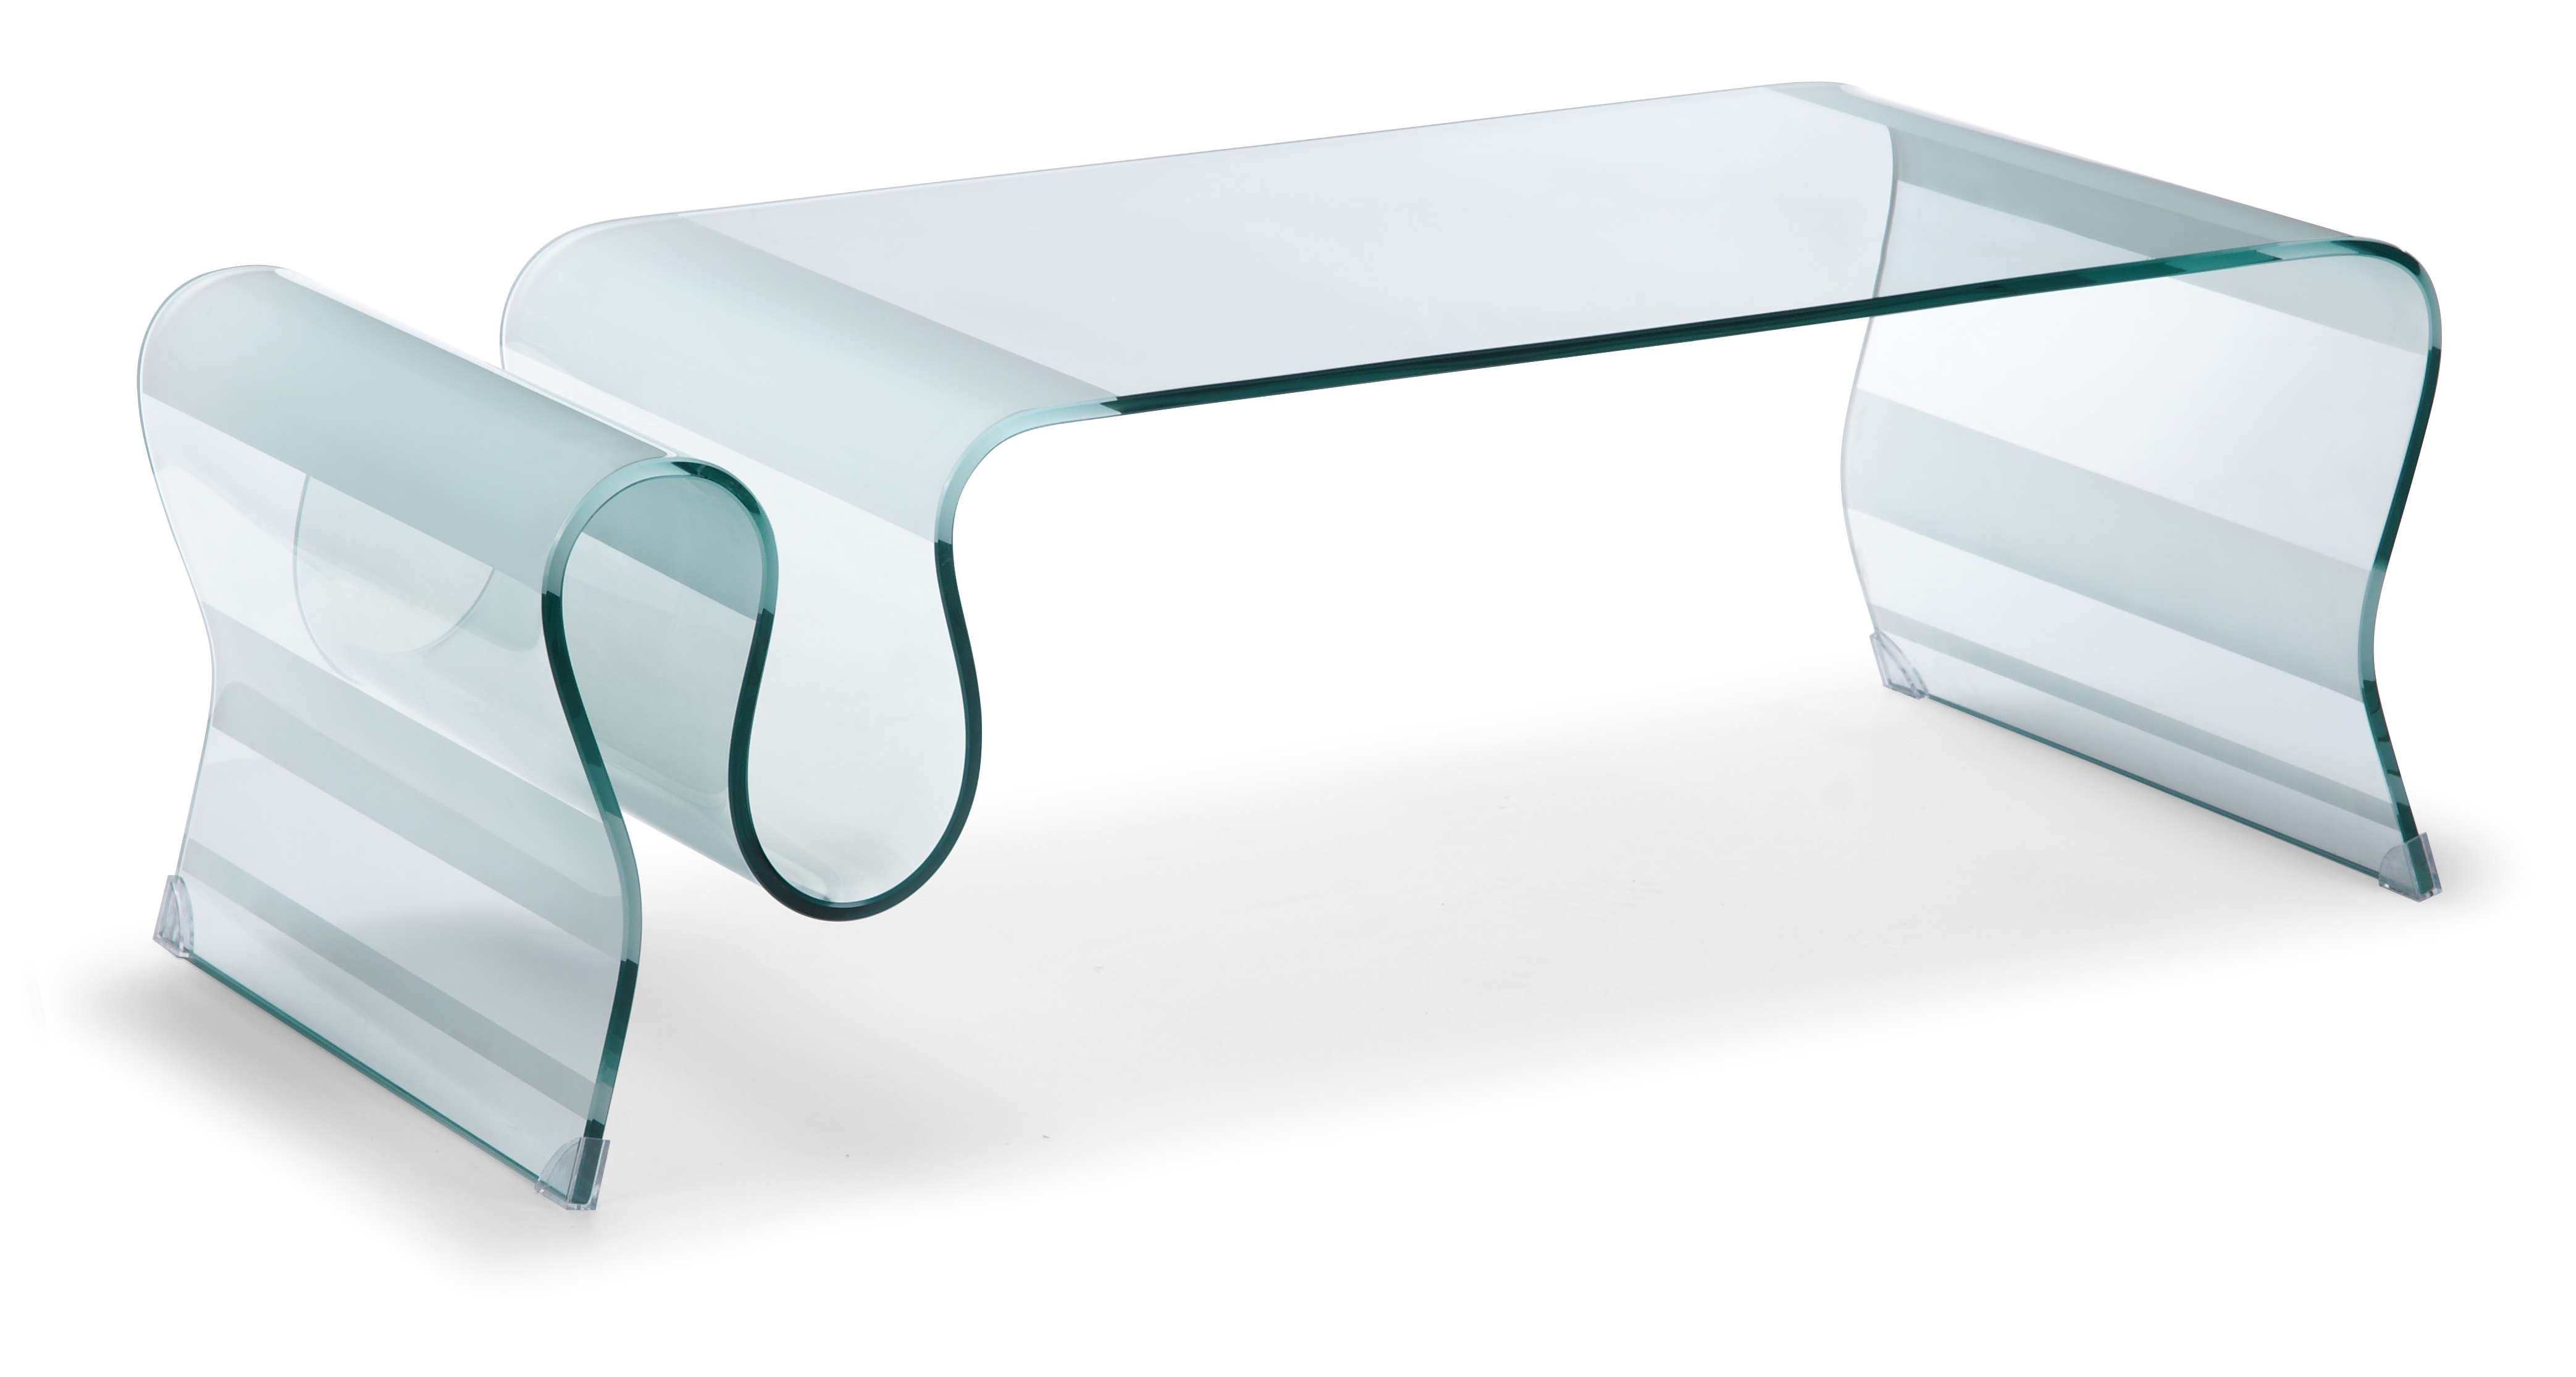 2018 Transparent Glass Coffee Tables In Important Facts That You Should Know About Tempered Glass Coffee (View 1 of 20)